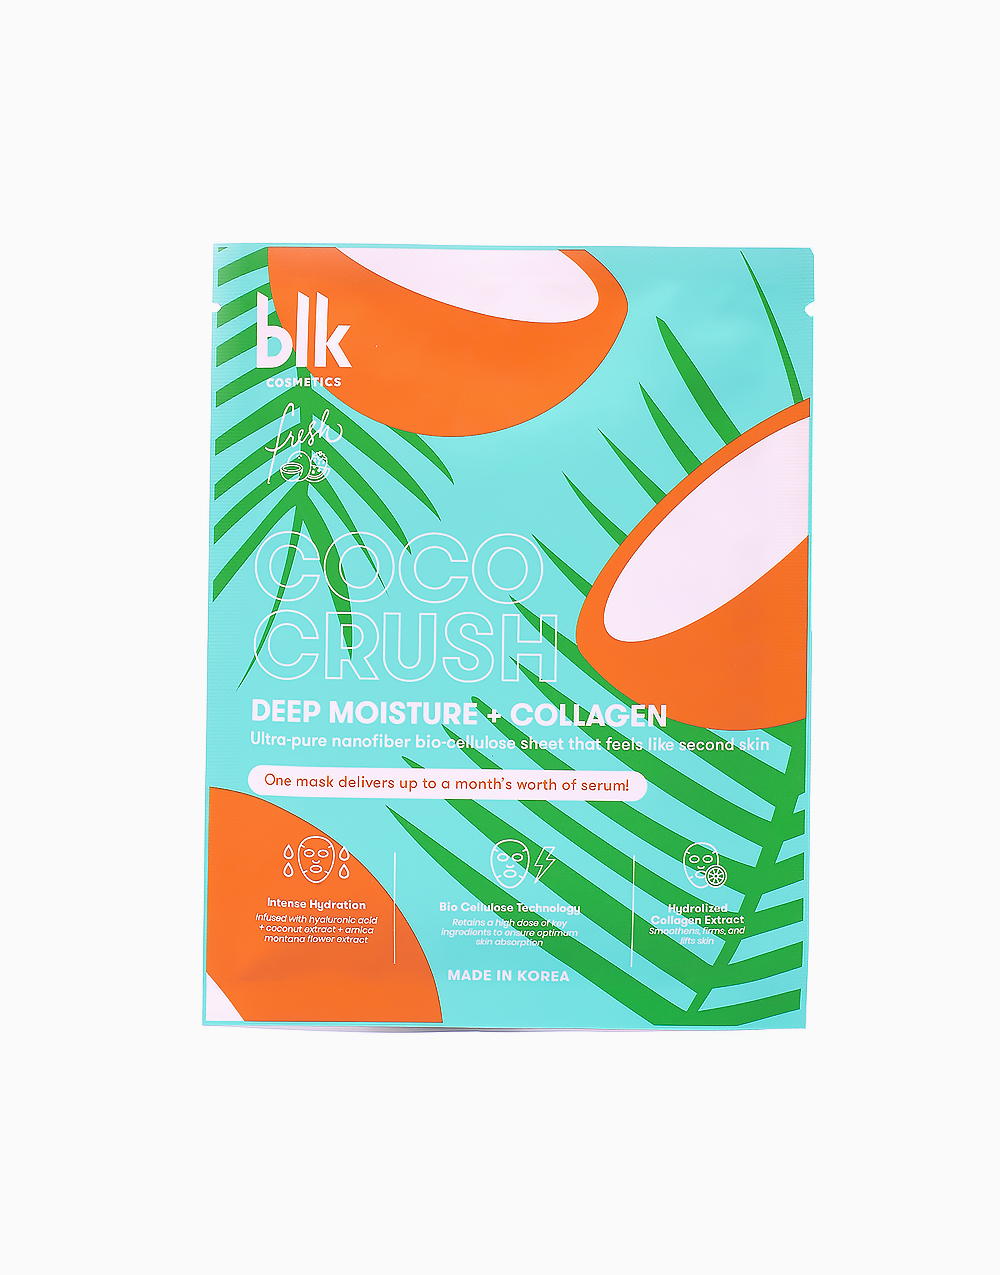 Fresh Deep Moisture + Collagen Face Mask Coco Crush by BLK Cosmetics